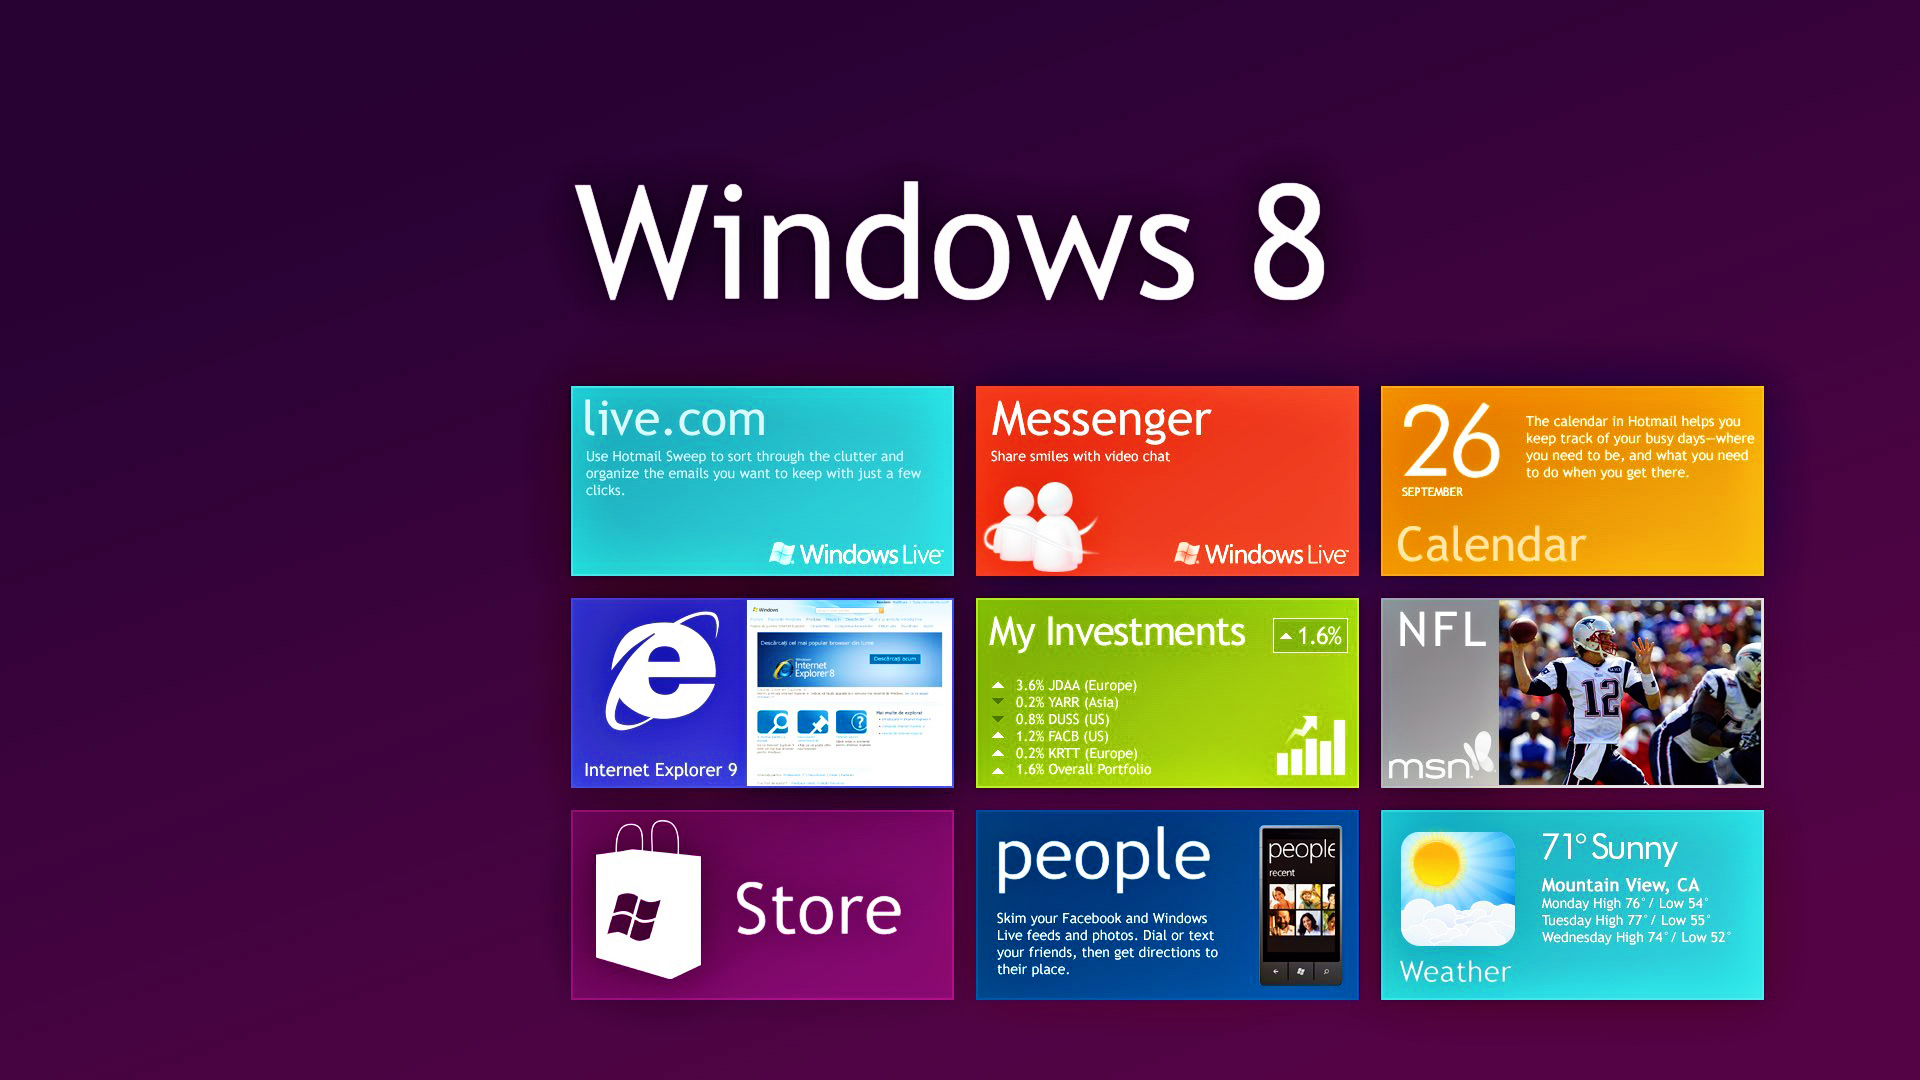 how to connect mobile internet to pc windows 8